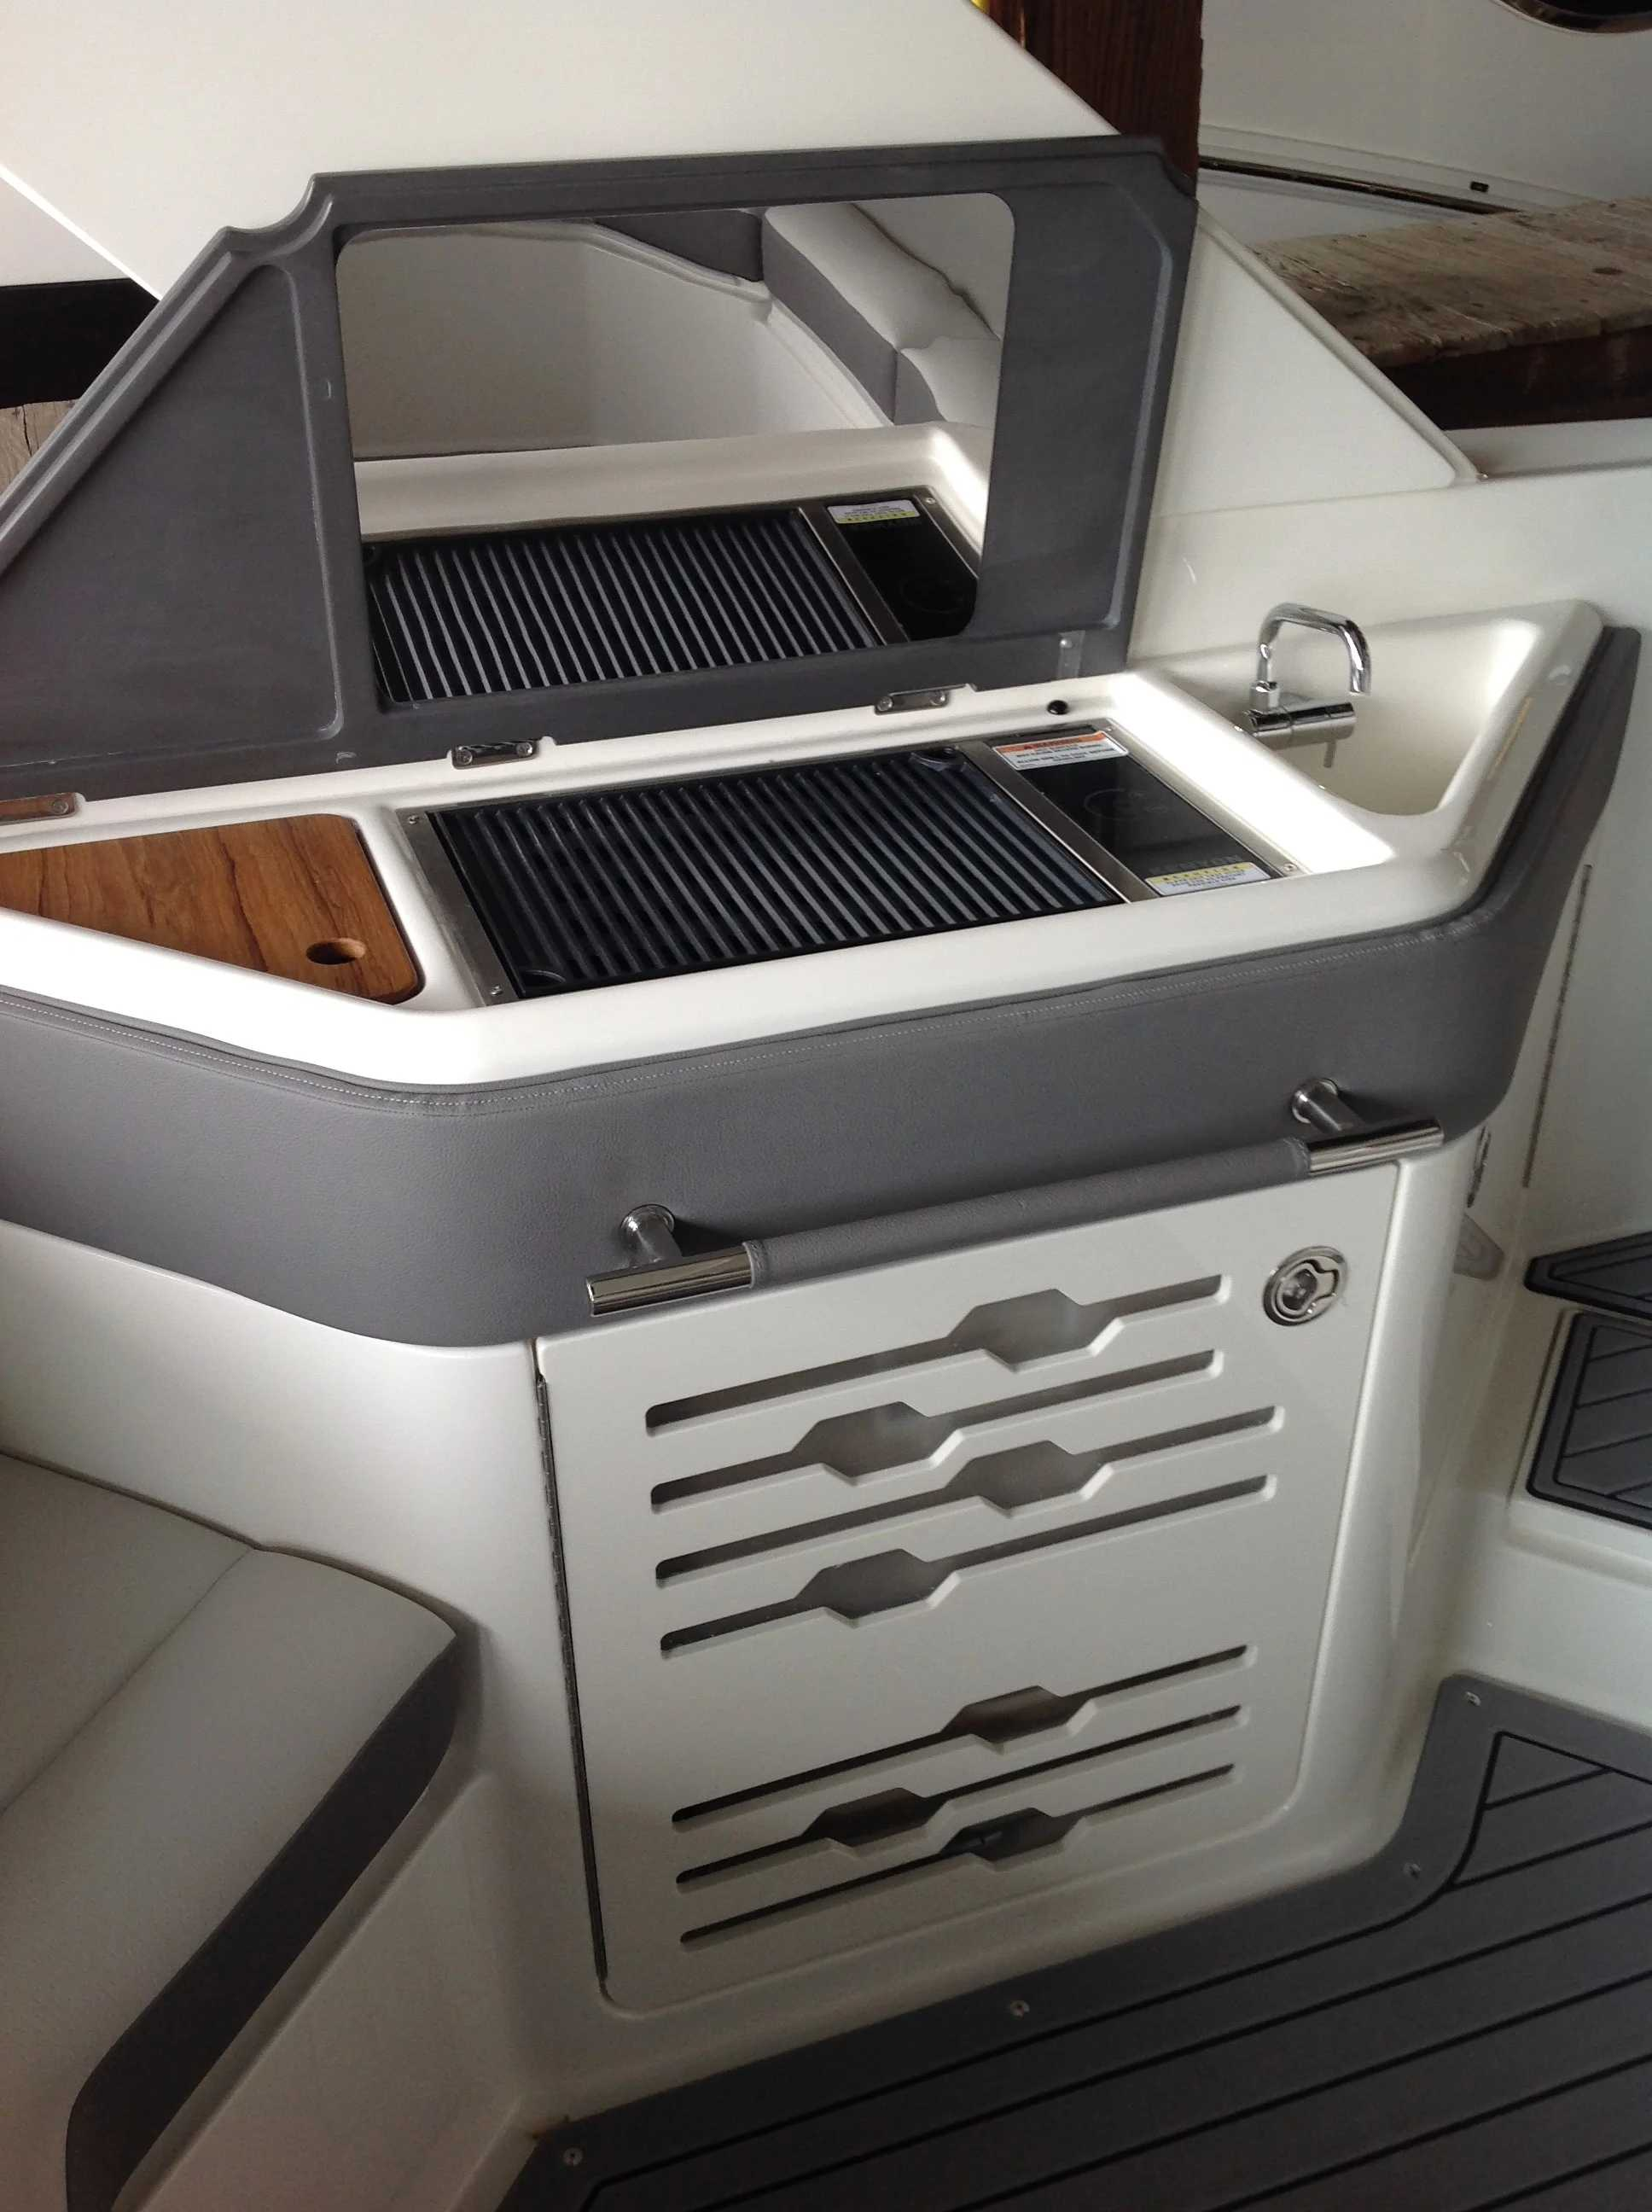 2021 Sea Ray boat for sale, model of the boat is 310 SLX & Image # 18 of 20